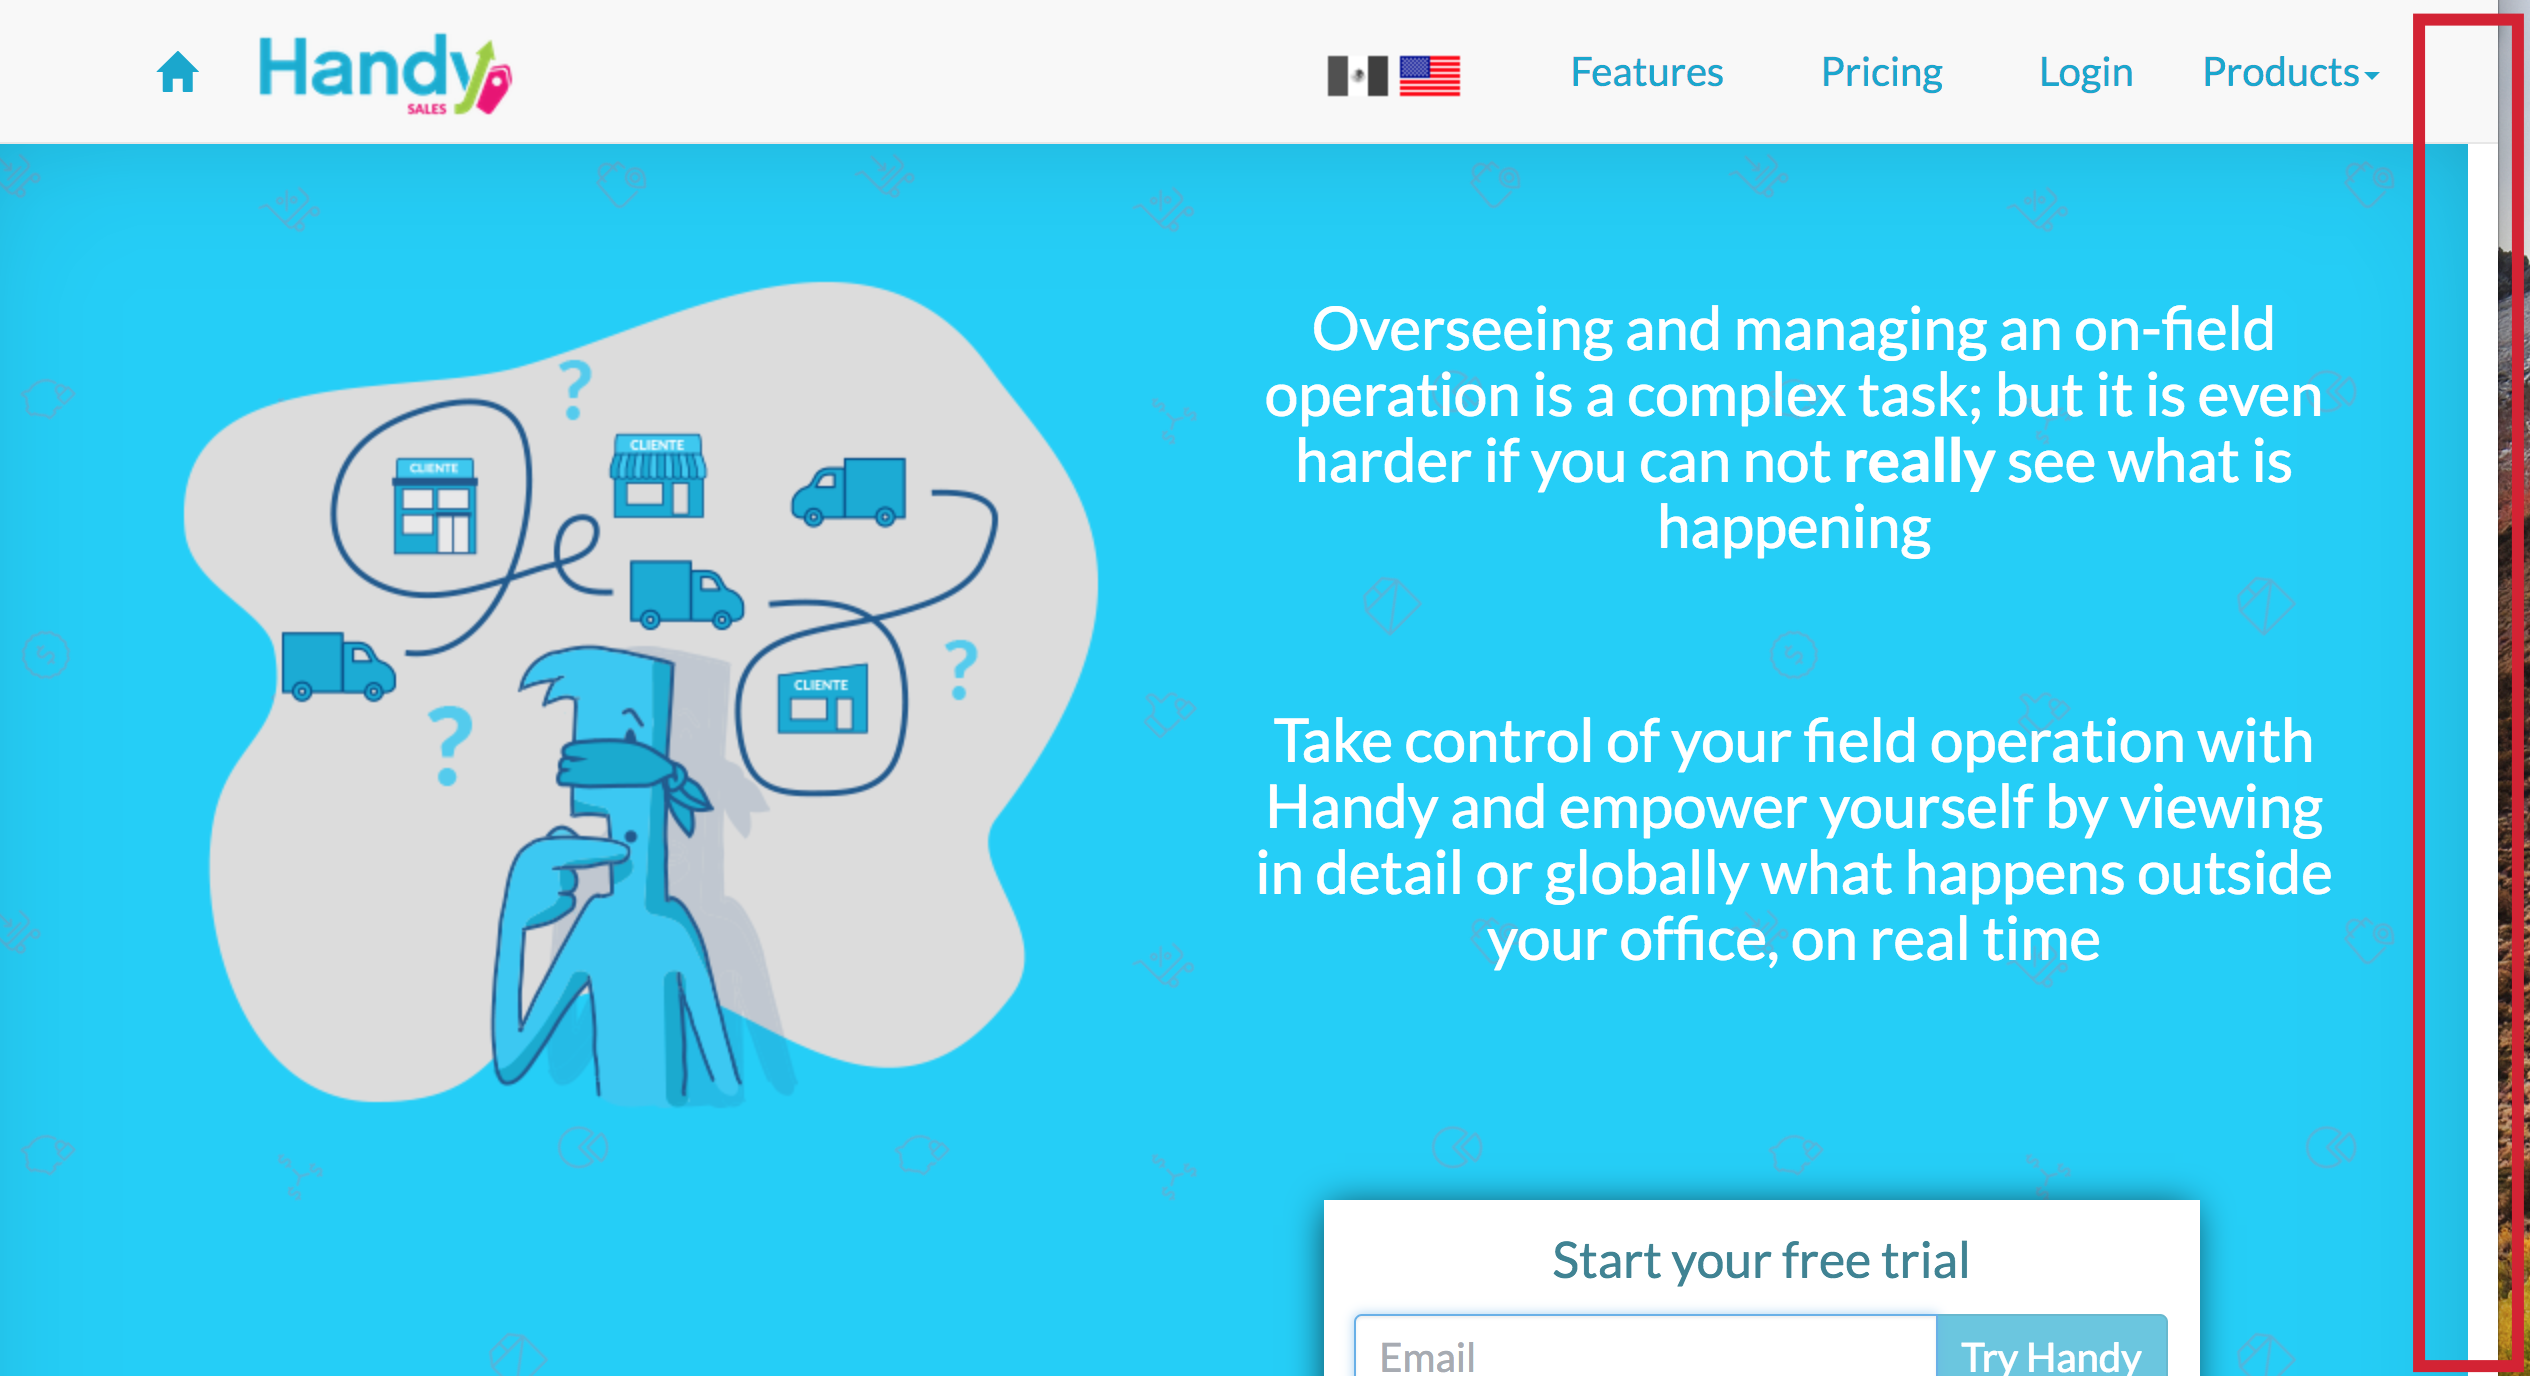 Landing page with extra white space on right side